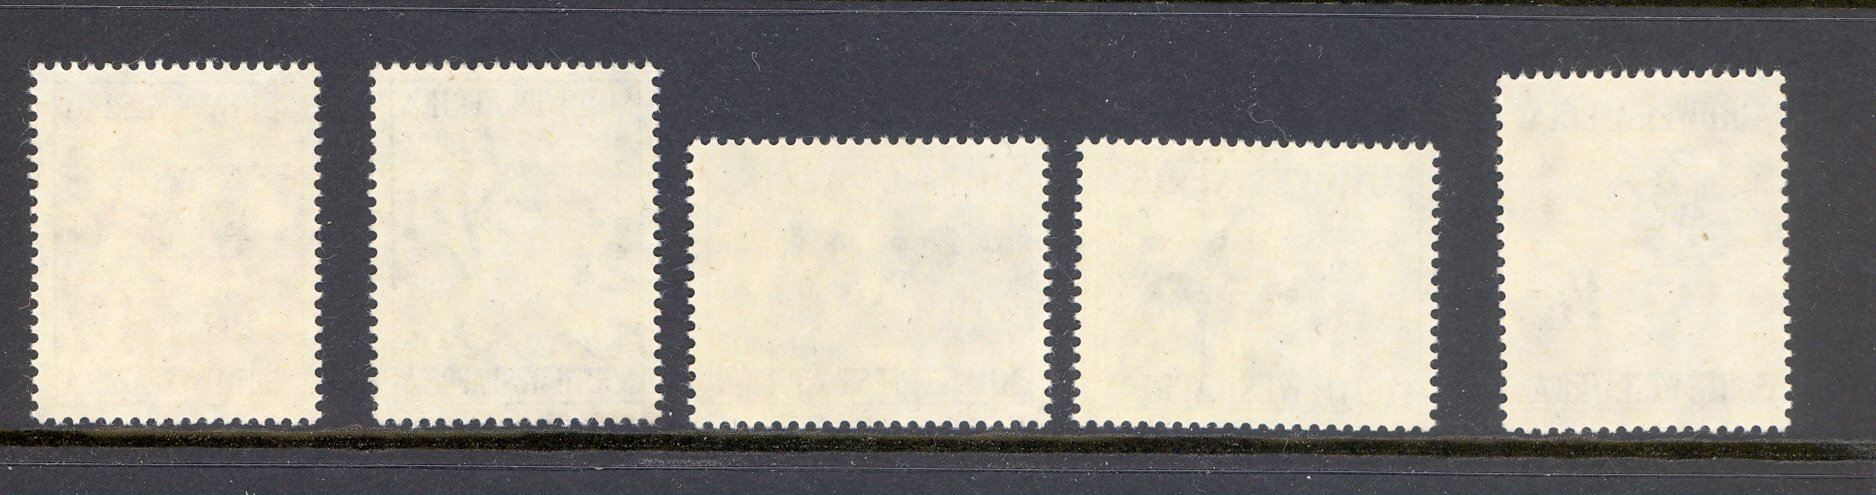 St Lucia SG 166-70 1960 Watermark Change Set of 5.